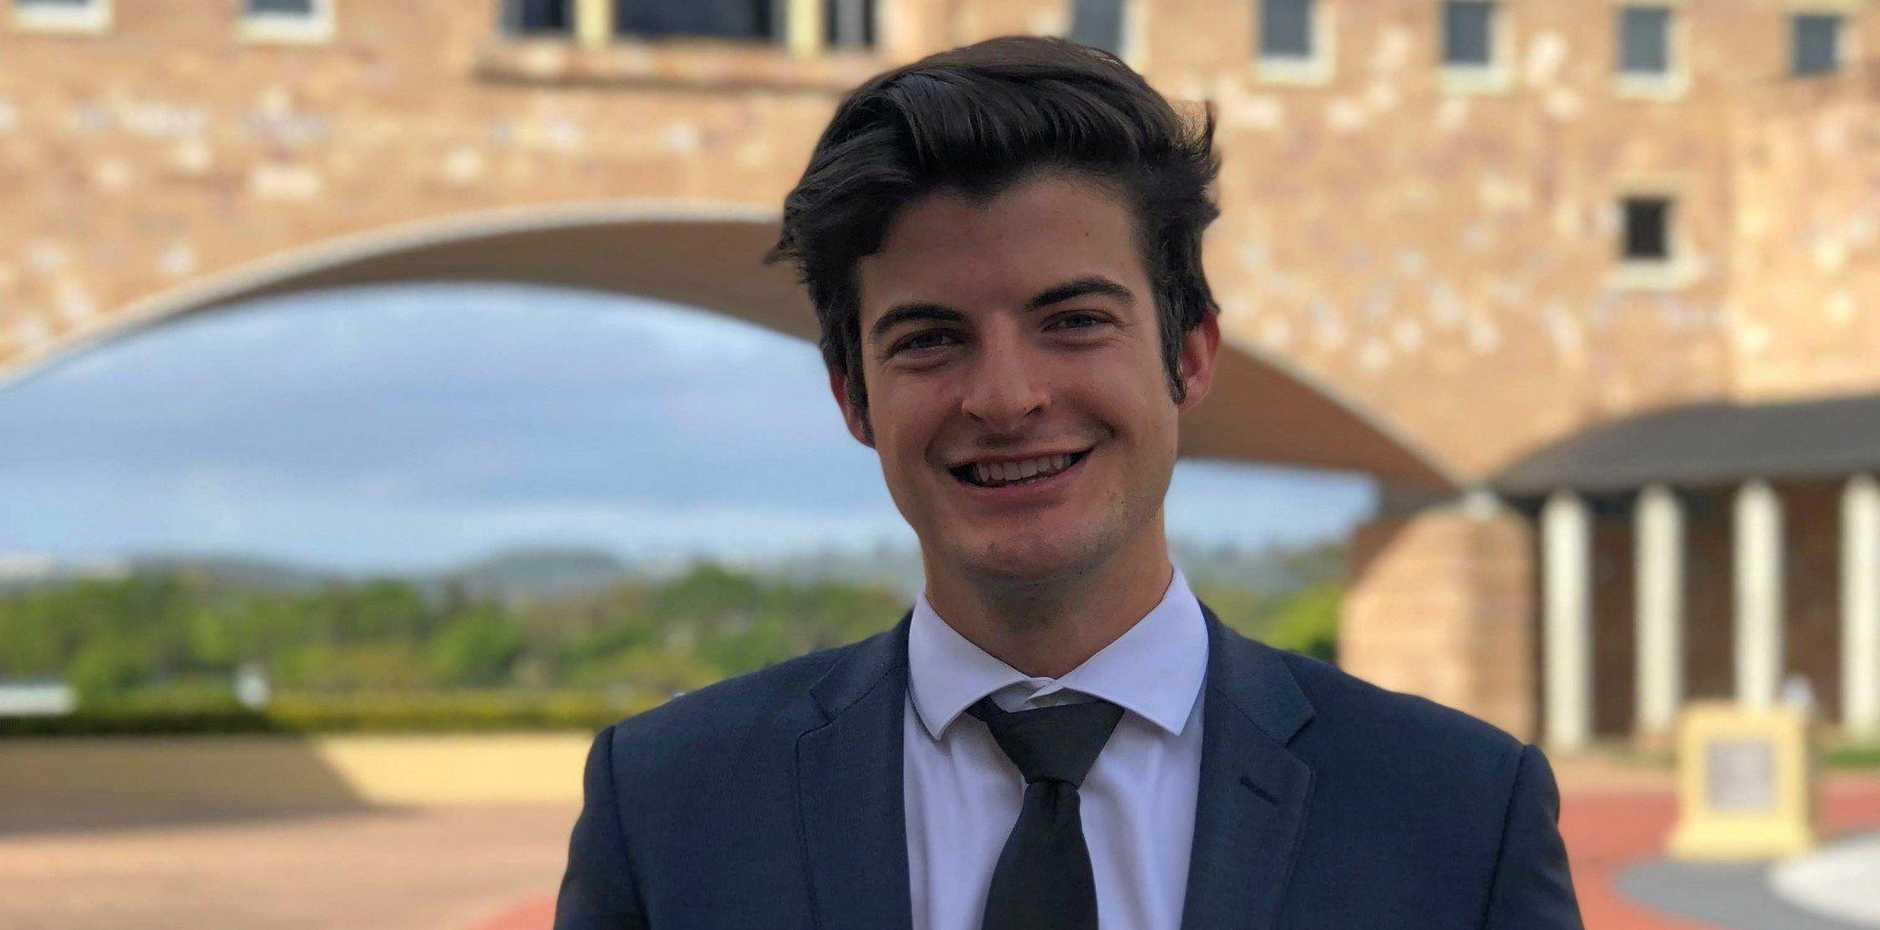 HIGH ACHIEVER: Jacob Cookson, an ex-St Brendan's College student, is studying law and biomedical science at Bond University. He has also accepted a scholarship to study in Hong Kong later this year.